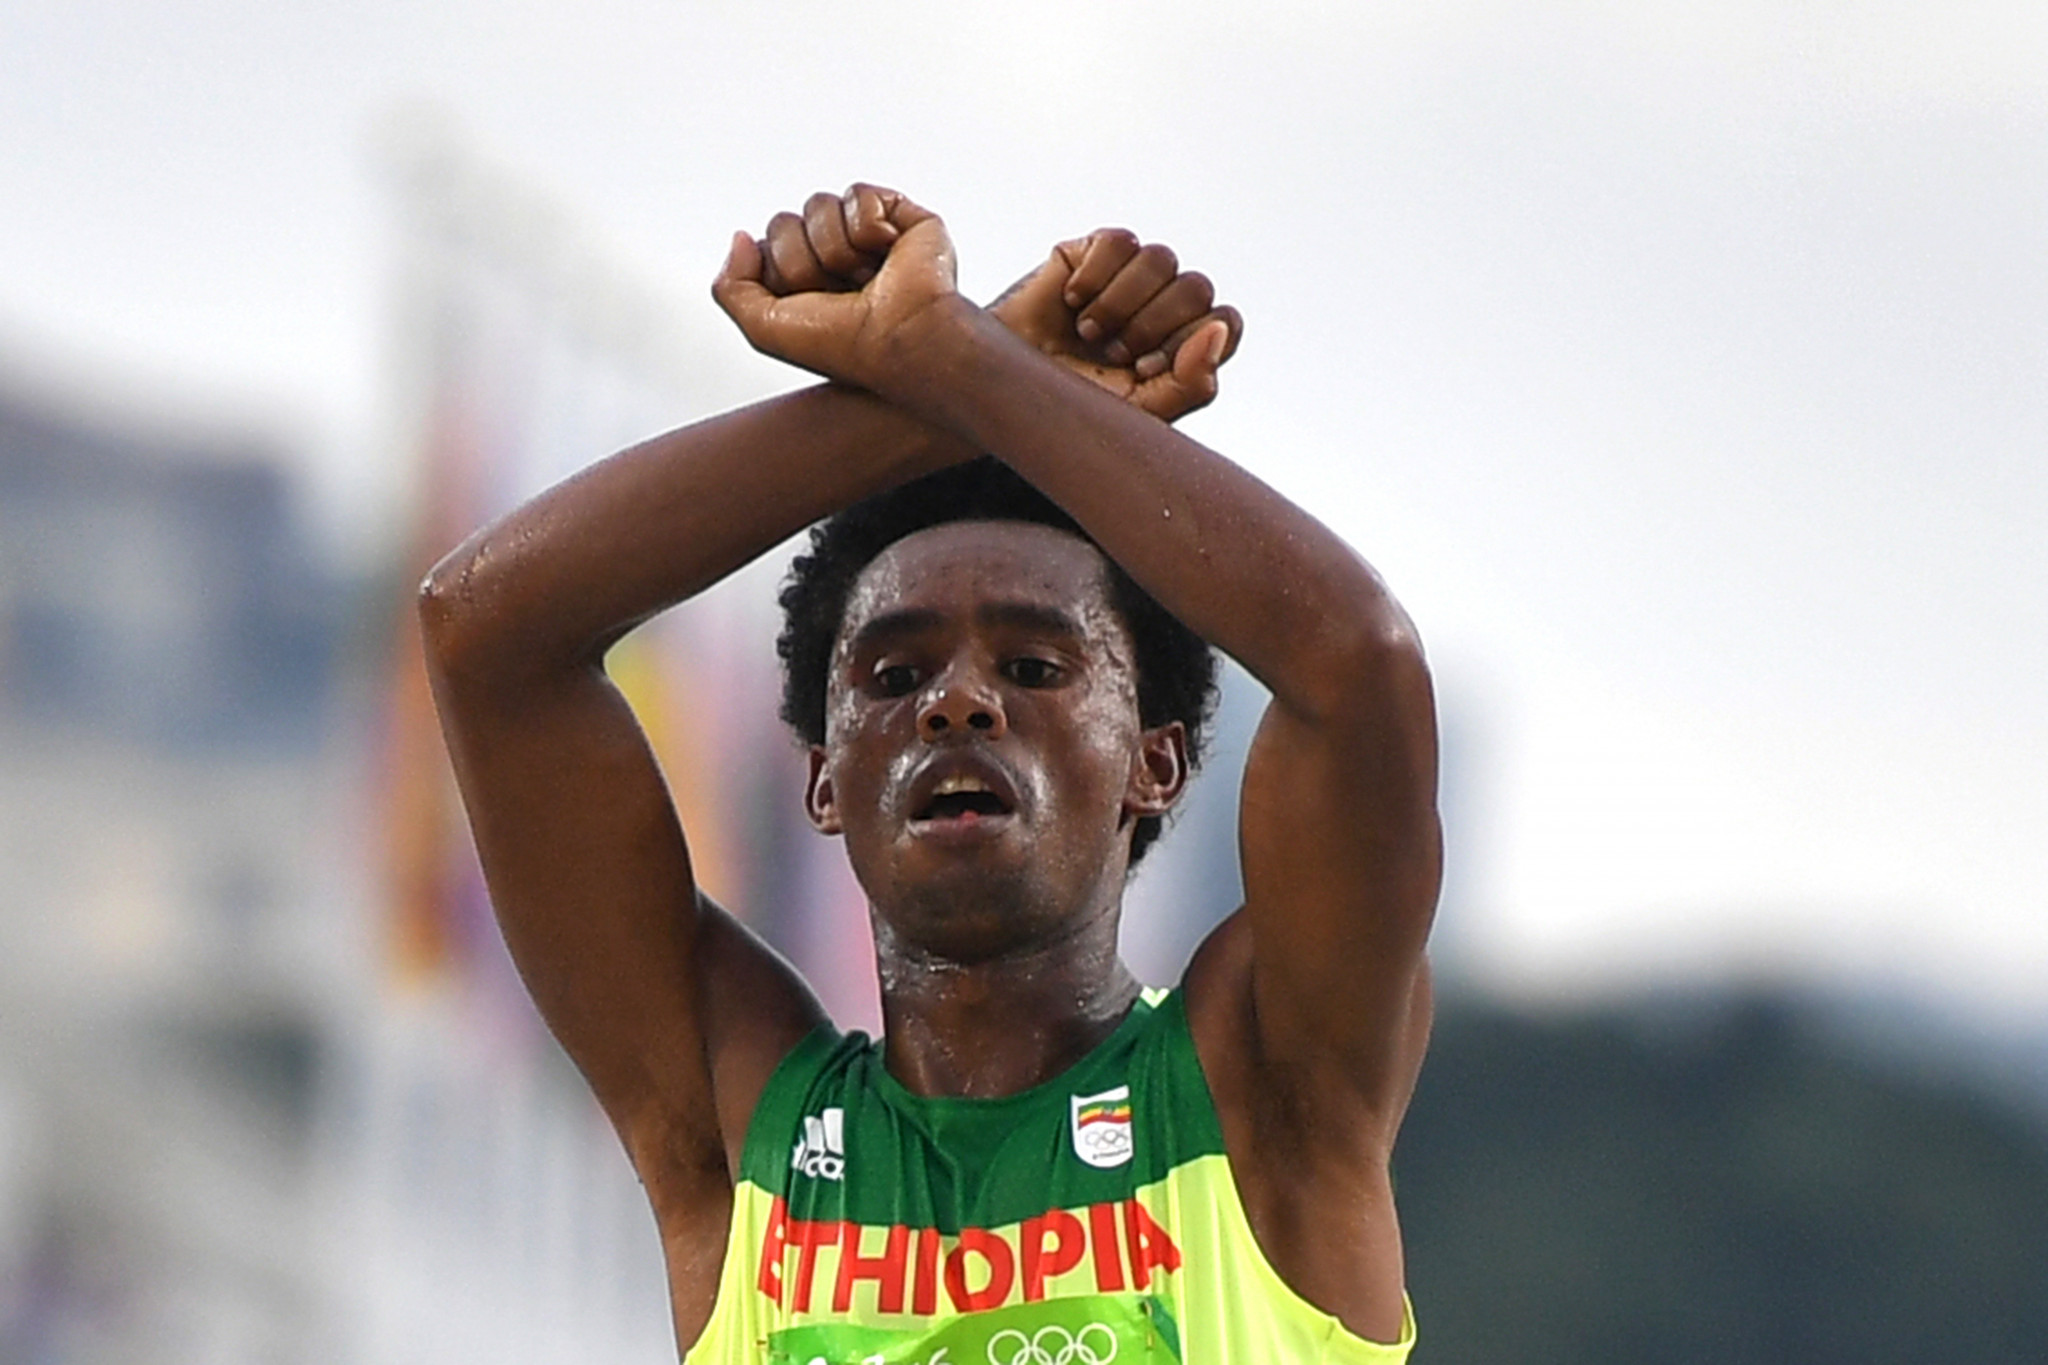 Ethiopian Olympic medallist Feyisa Lilesa went unpunished by the IOC for a political gesture at Rio 2016 ©Getty Images